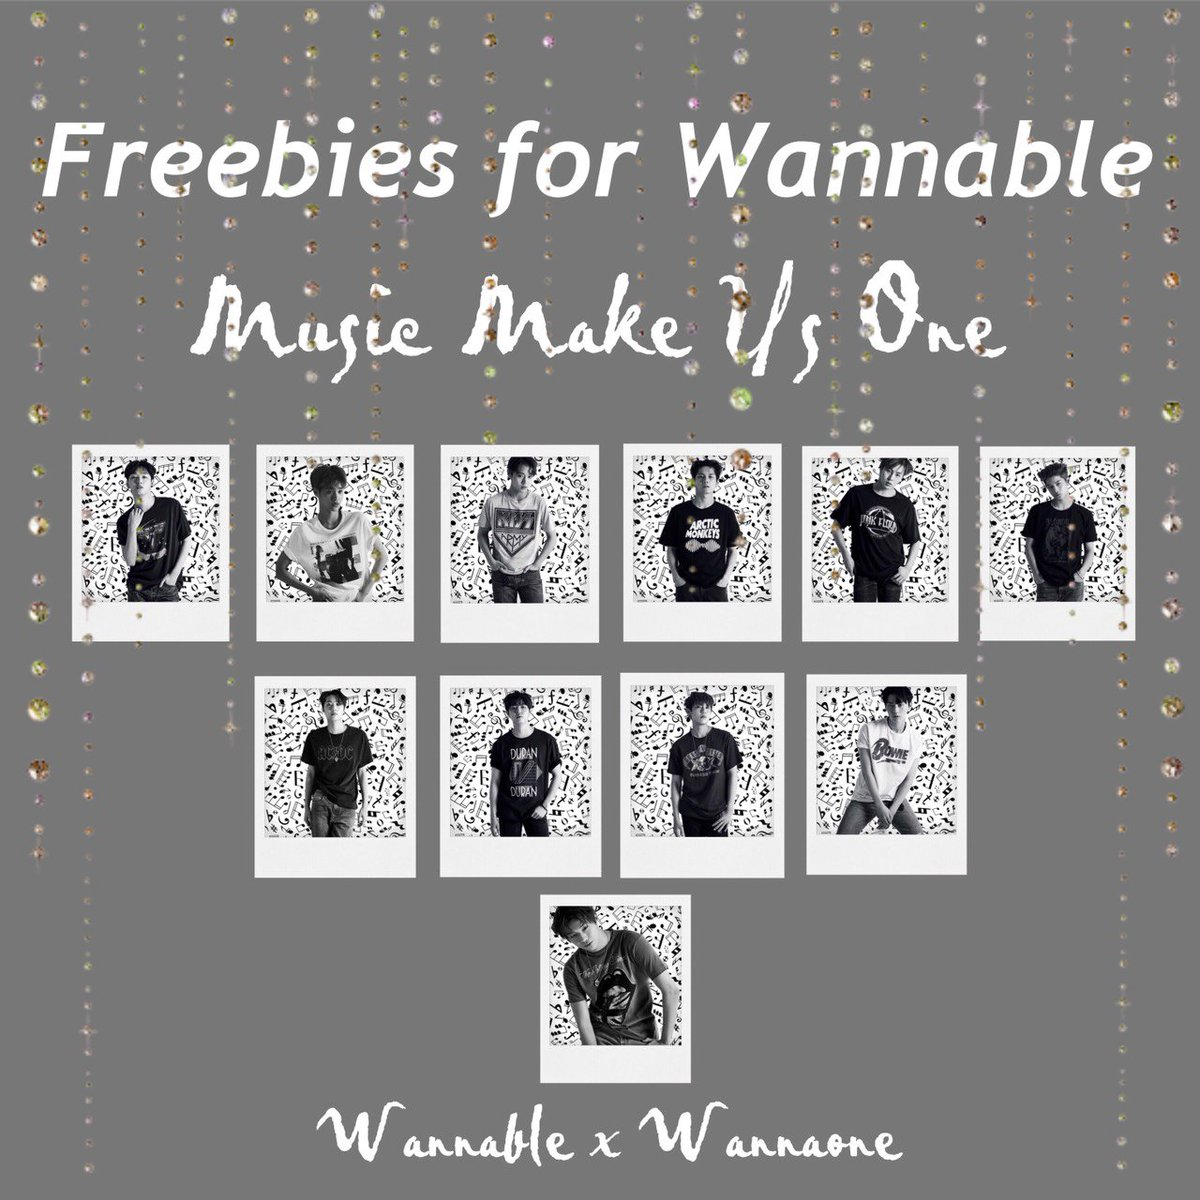 [ HELP RT ] - - ♪♪MUSIC MAKE US ONE ♪♪                       WannaOne × Wannable ~ ~   HERE ARE THE FREEBIES FOR WANNABLES <br>http://pic.twitter.com/kQRFA1e4Ti